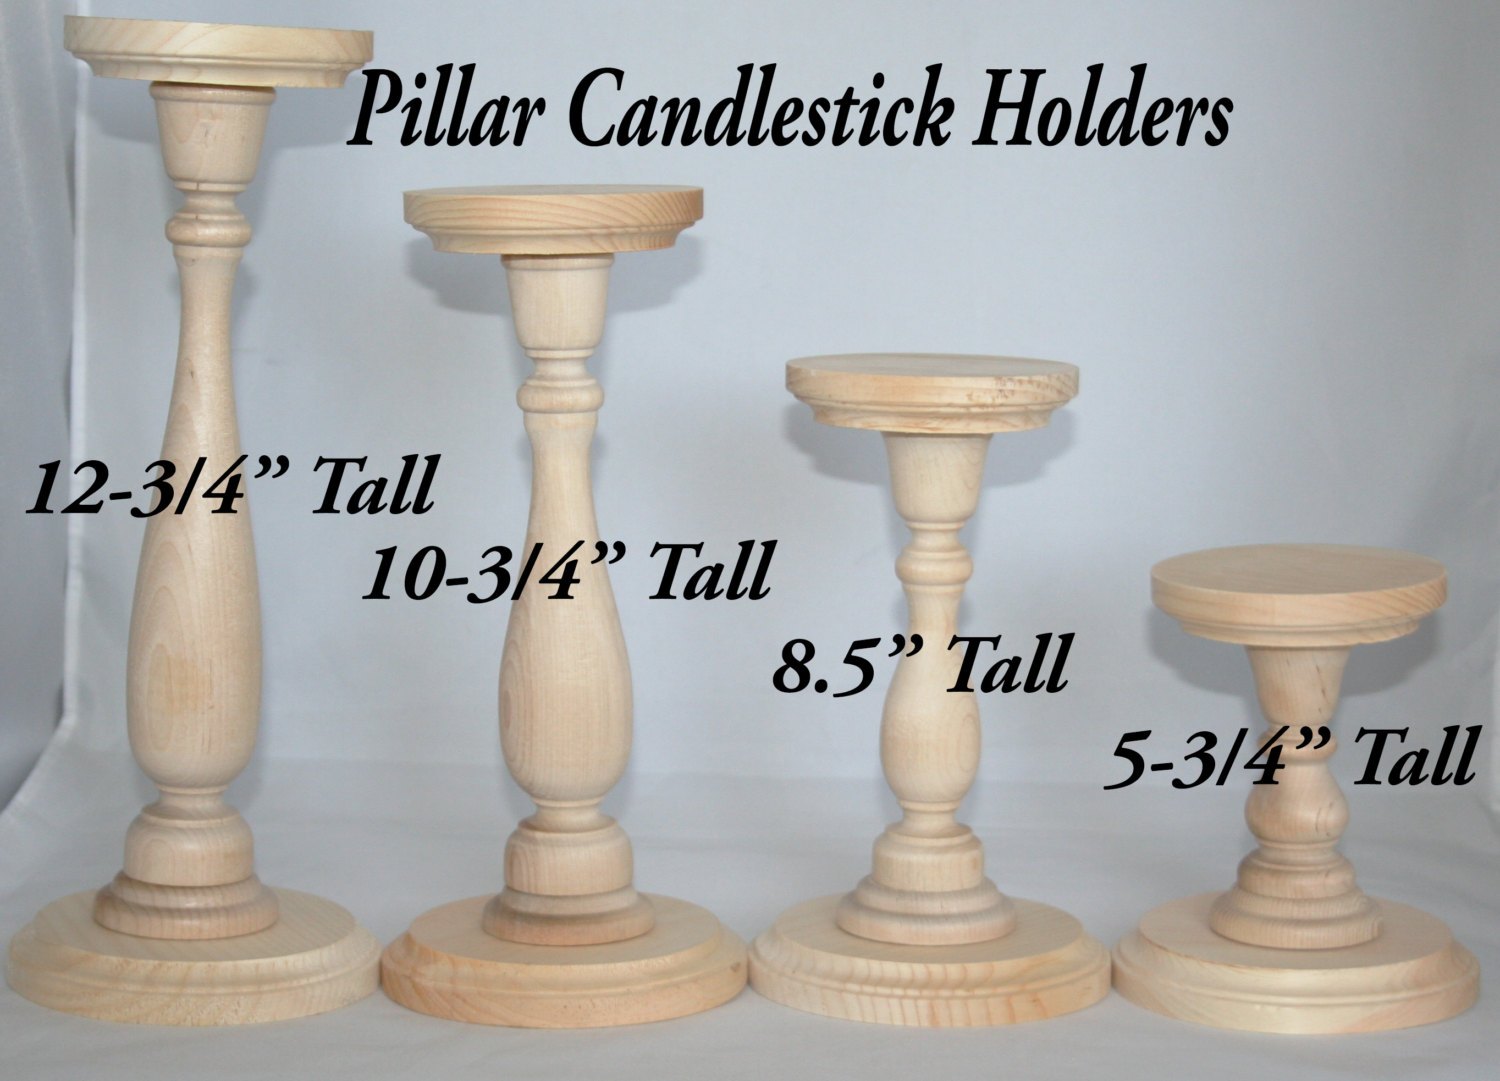 unfinished wood pillar candlestick holders diy wedding accents tall table various sizes accent decor white end set patterned plastic tablecloths target round and chairs pier one